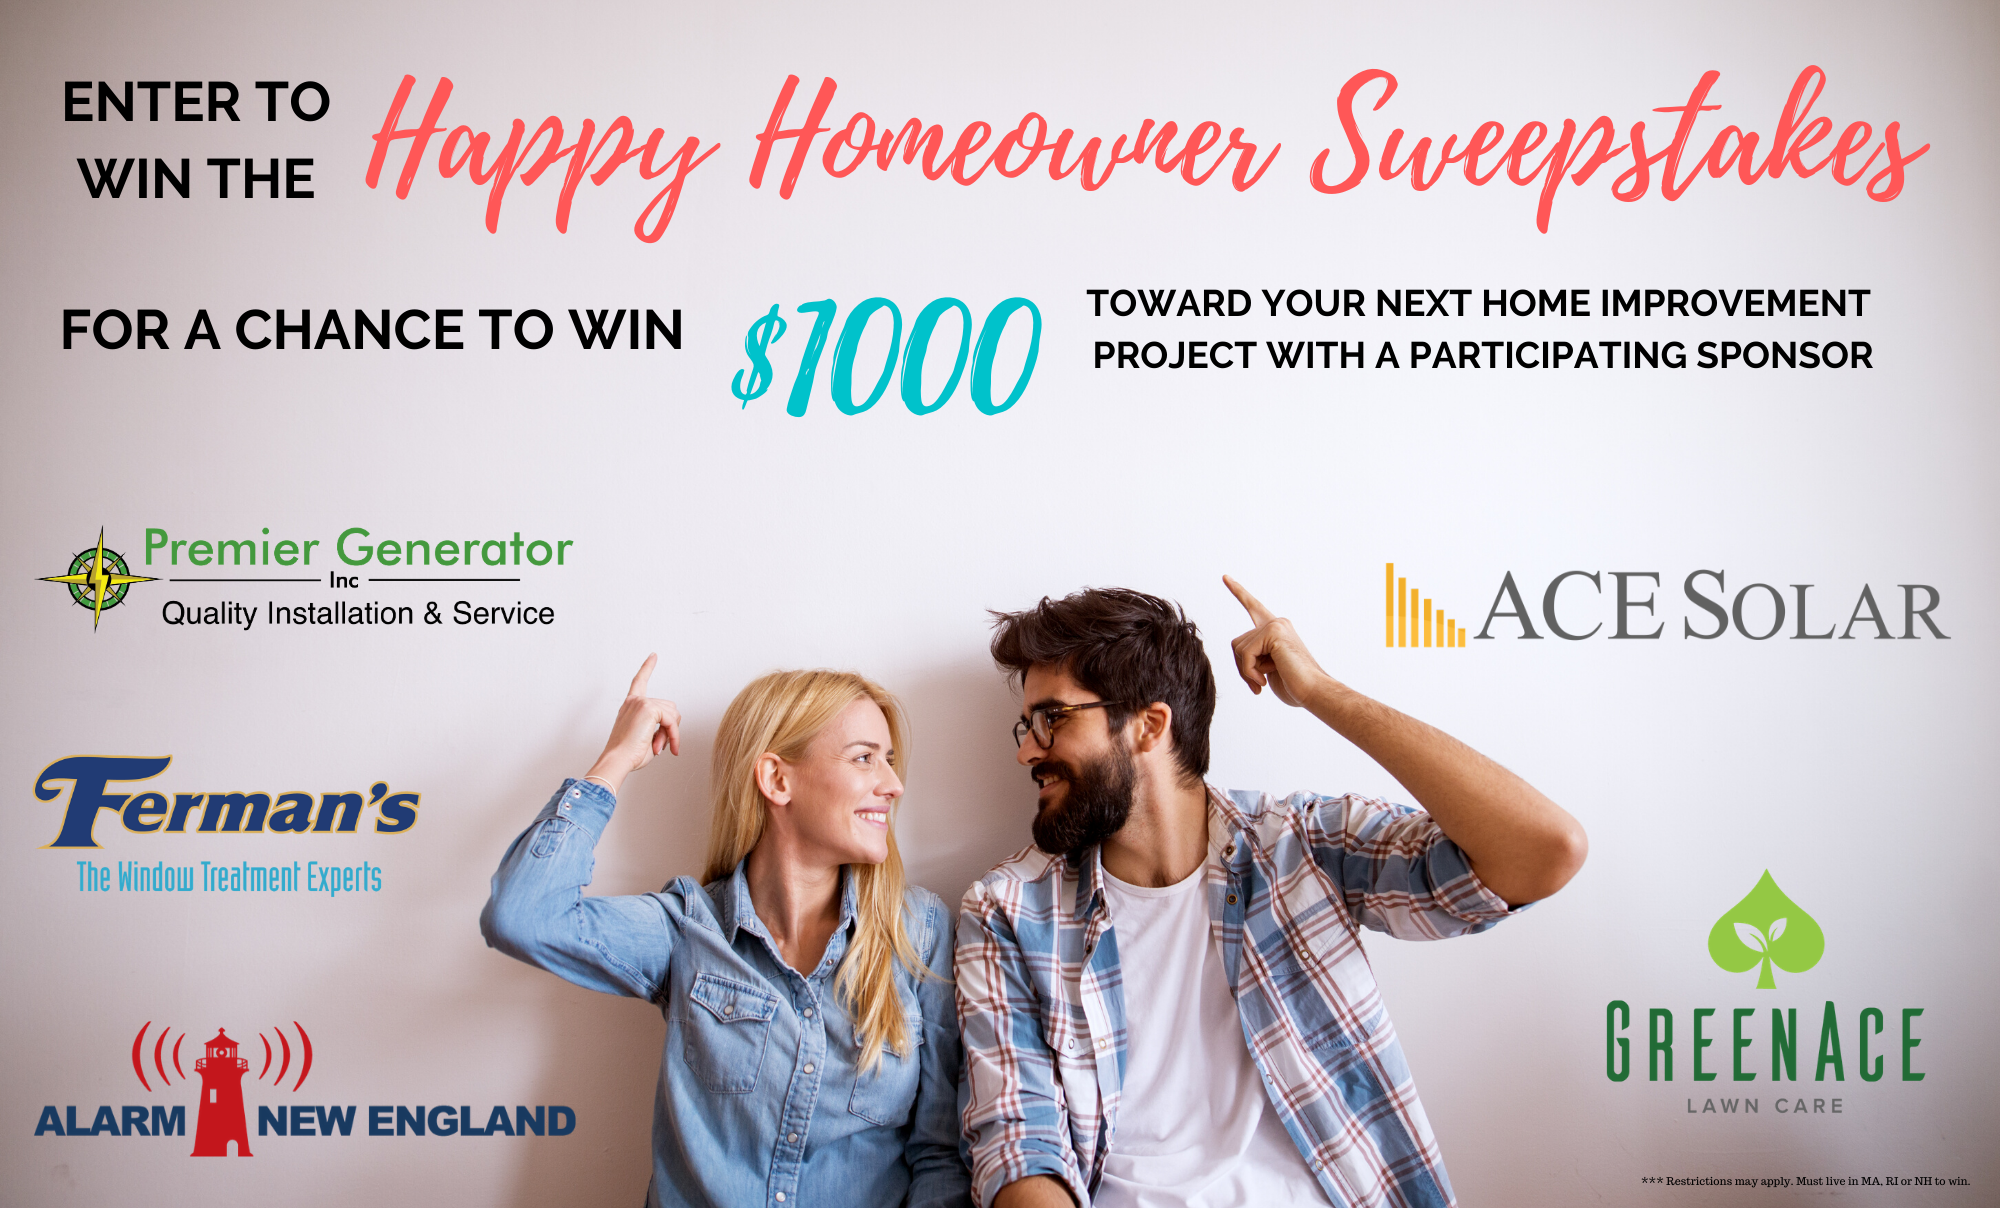 Enter the Happy Homeowner Sweepstakes